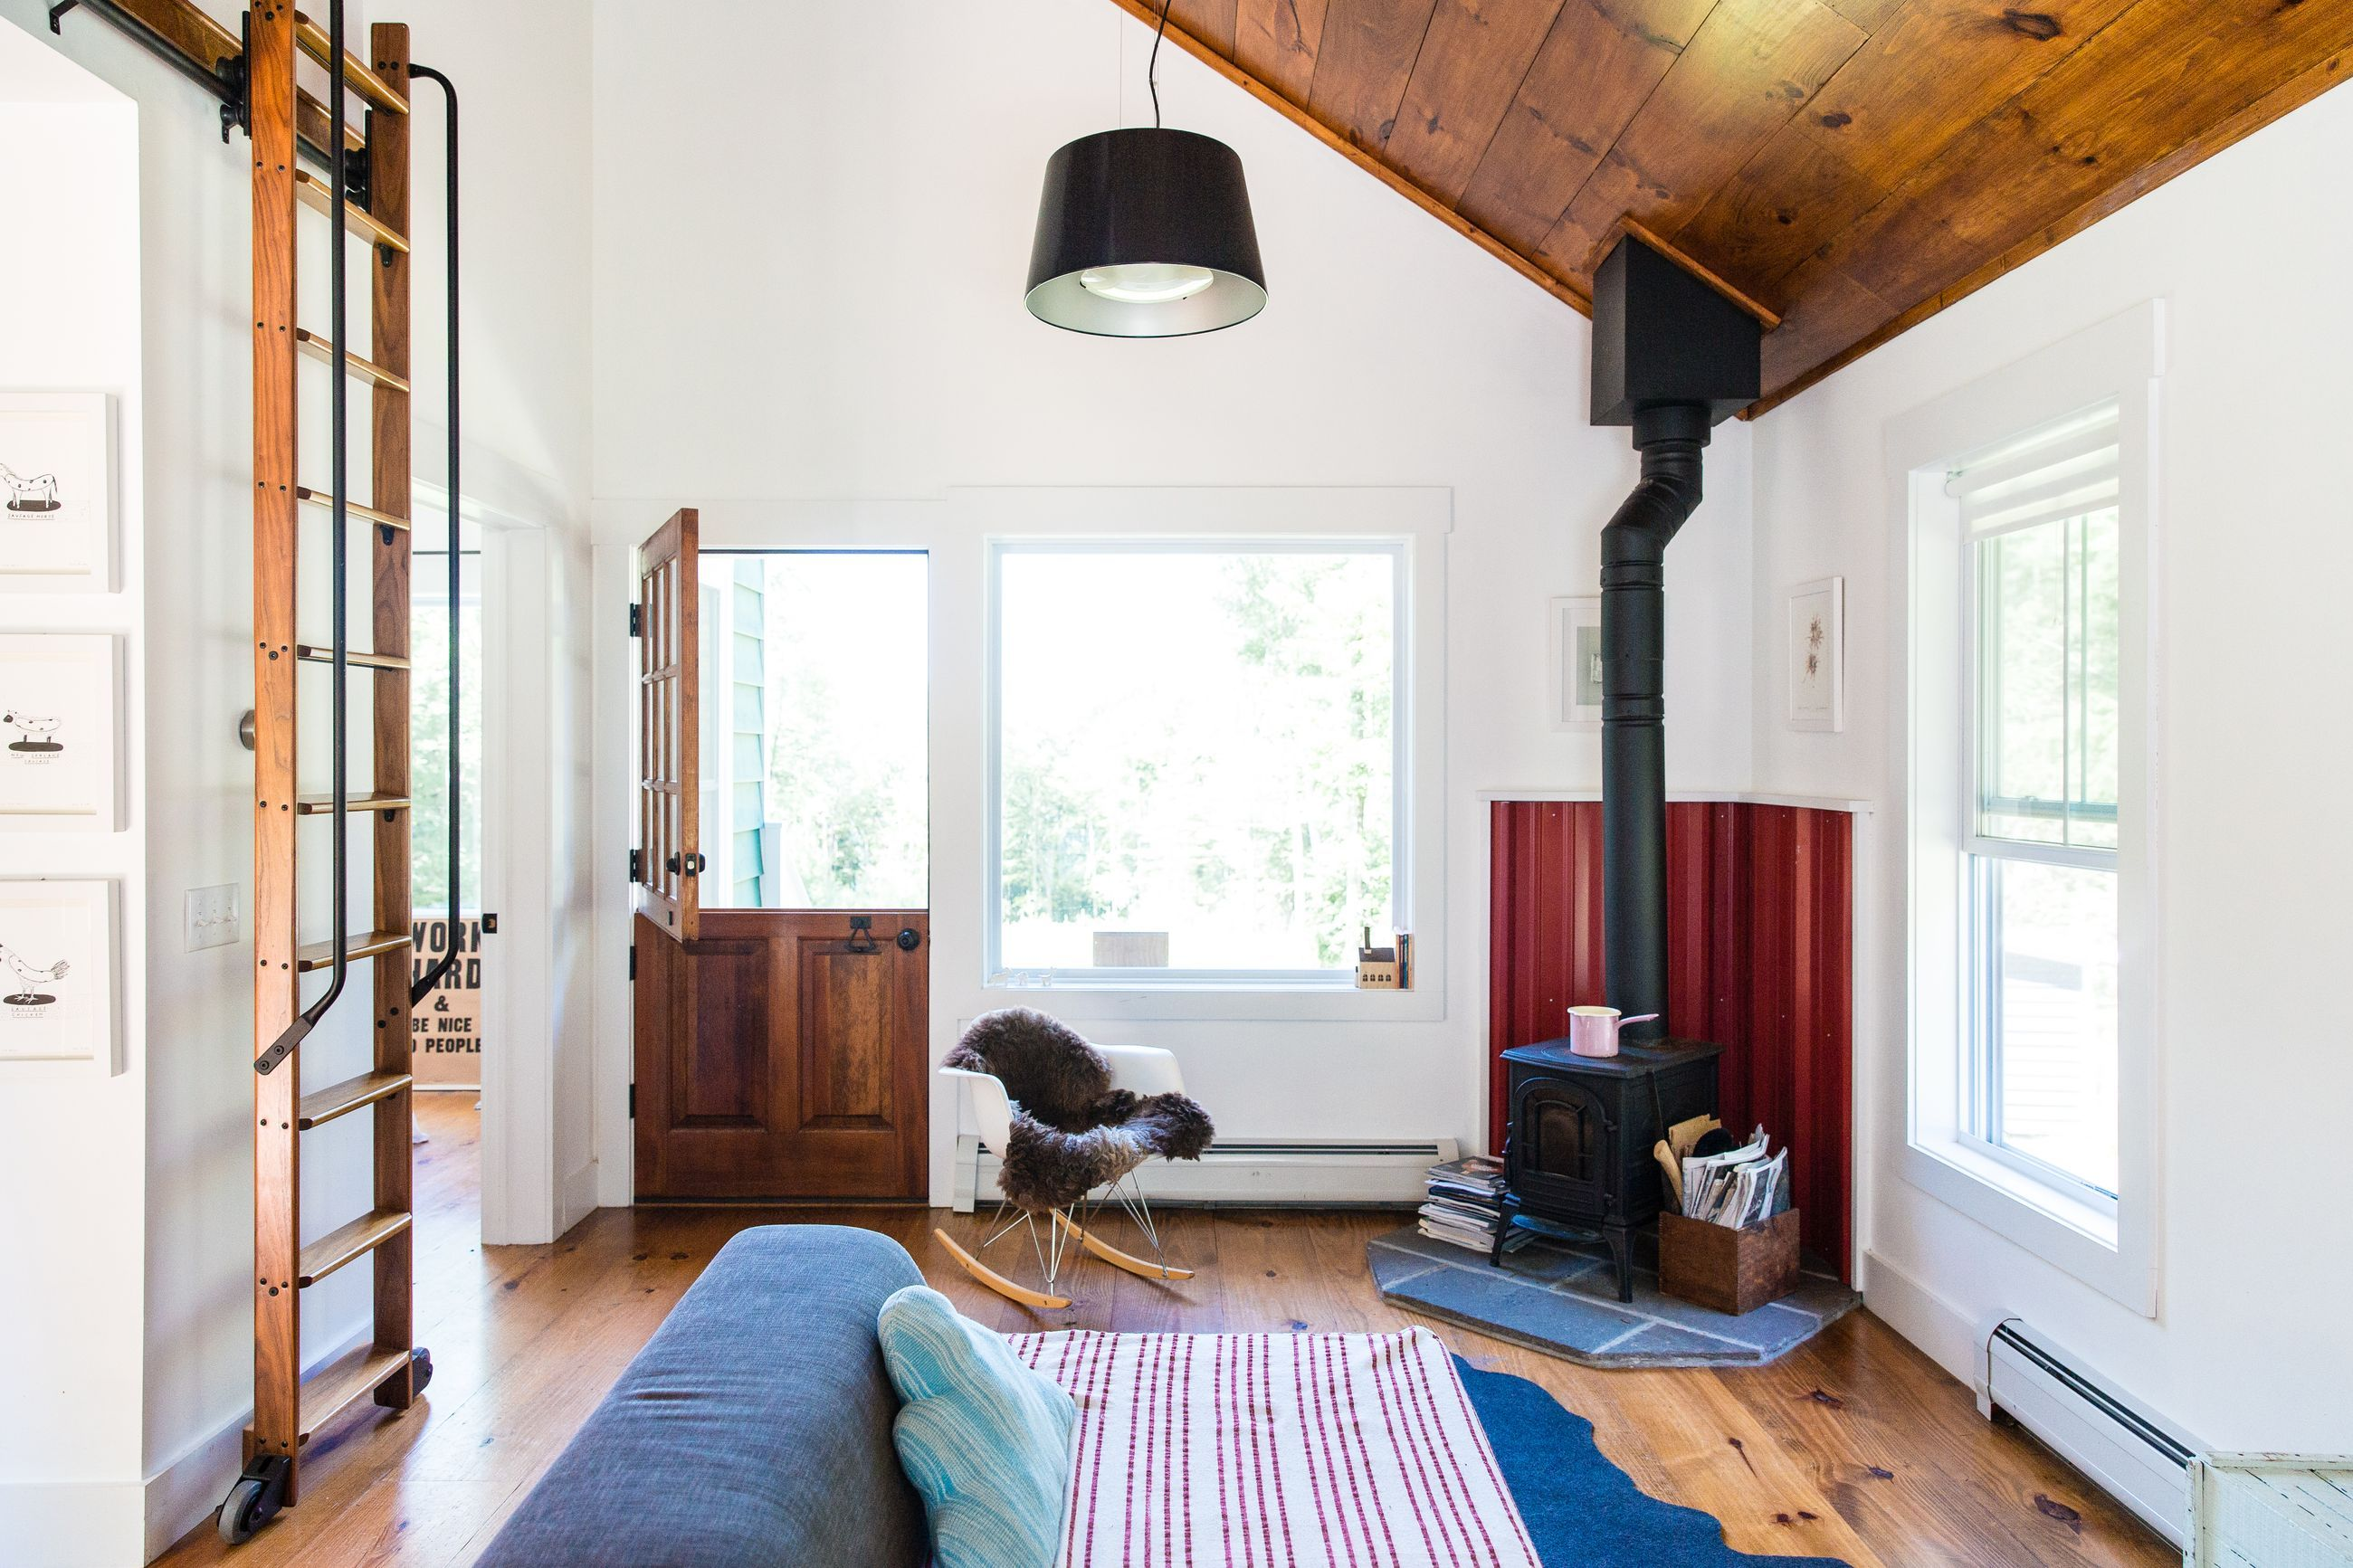 A tiny cabin in an all-American town offers a designer respite ...